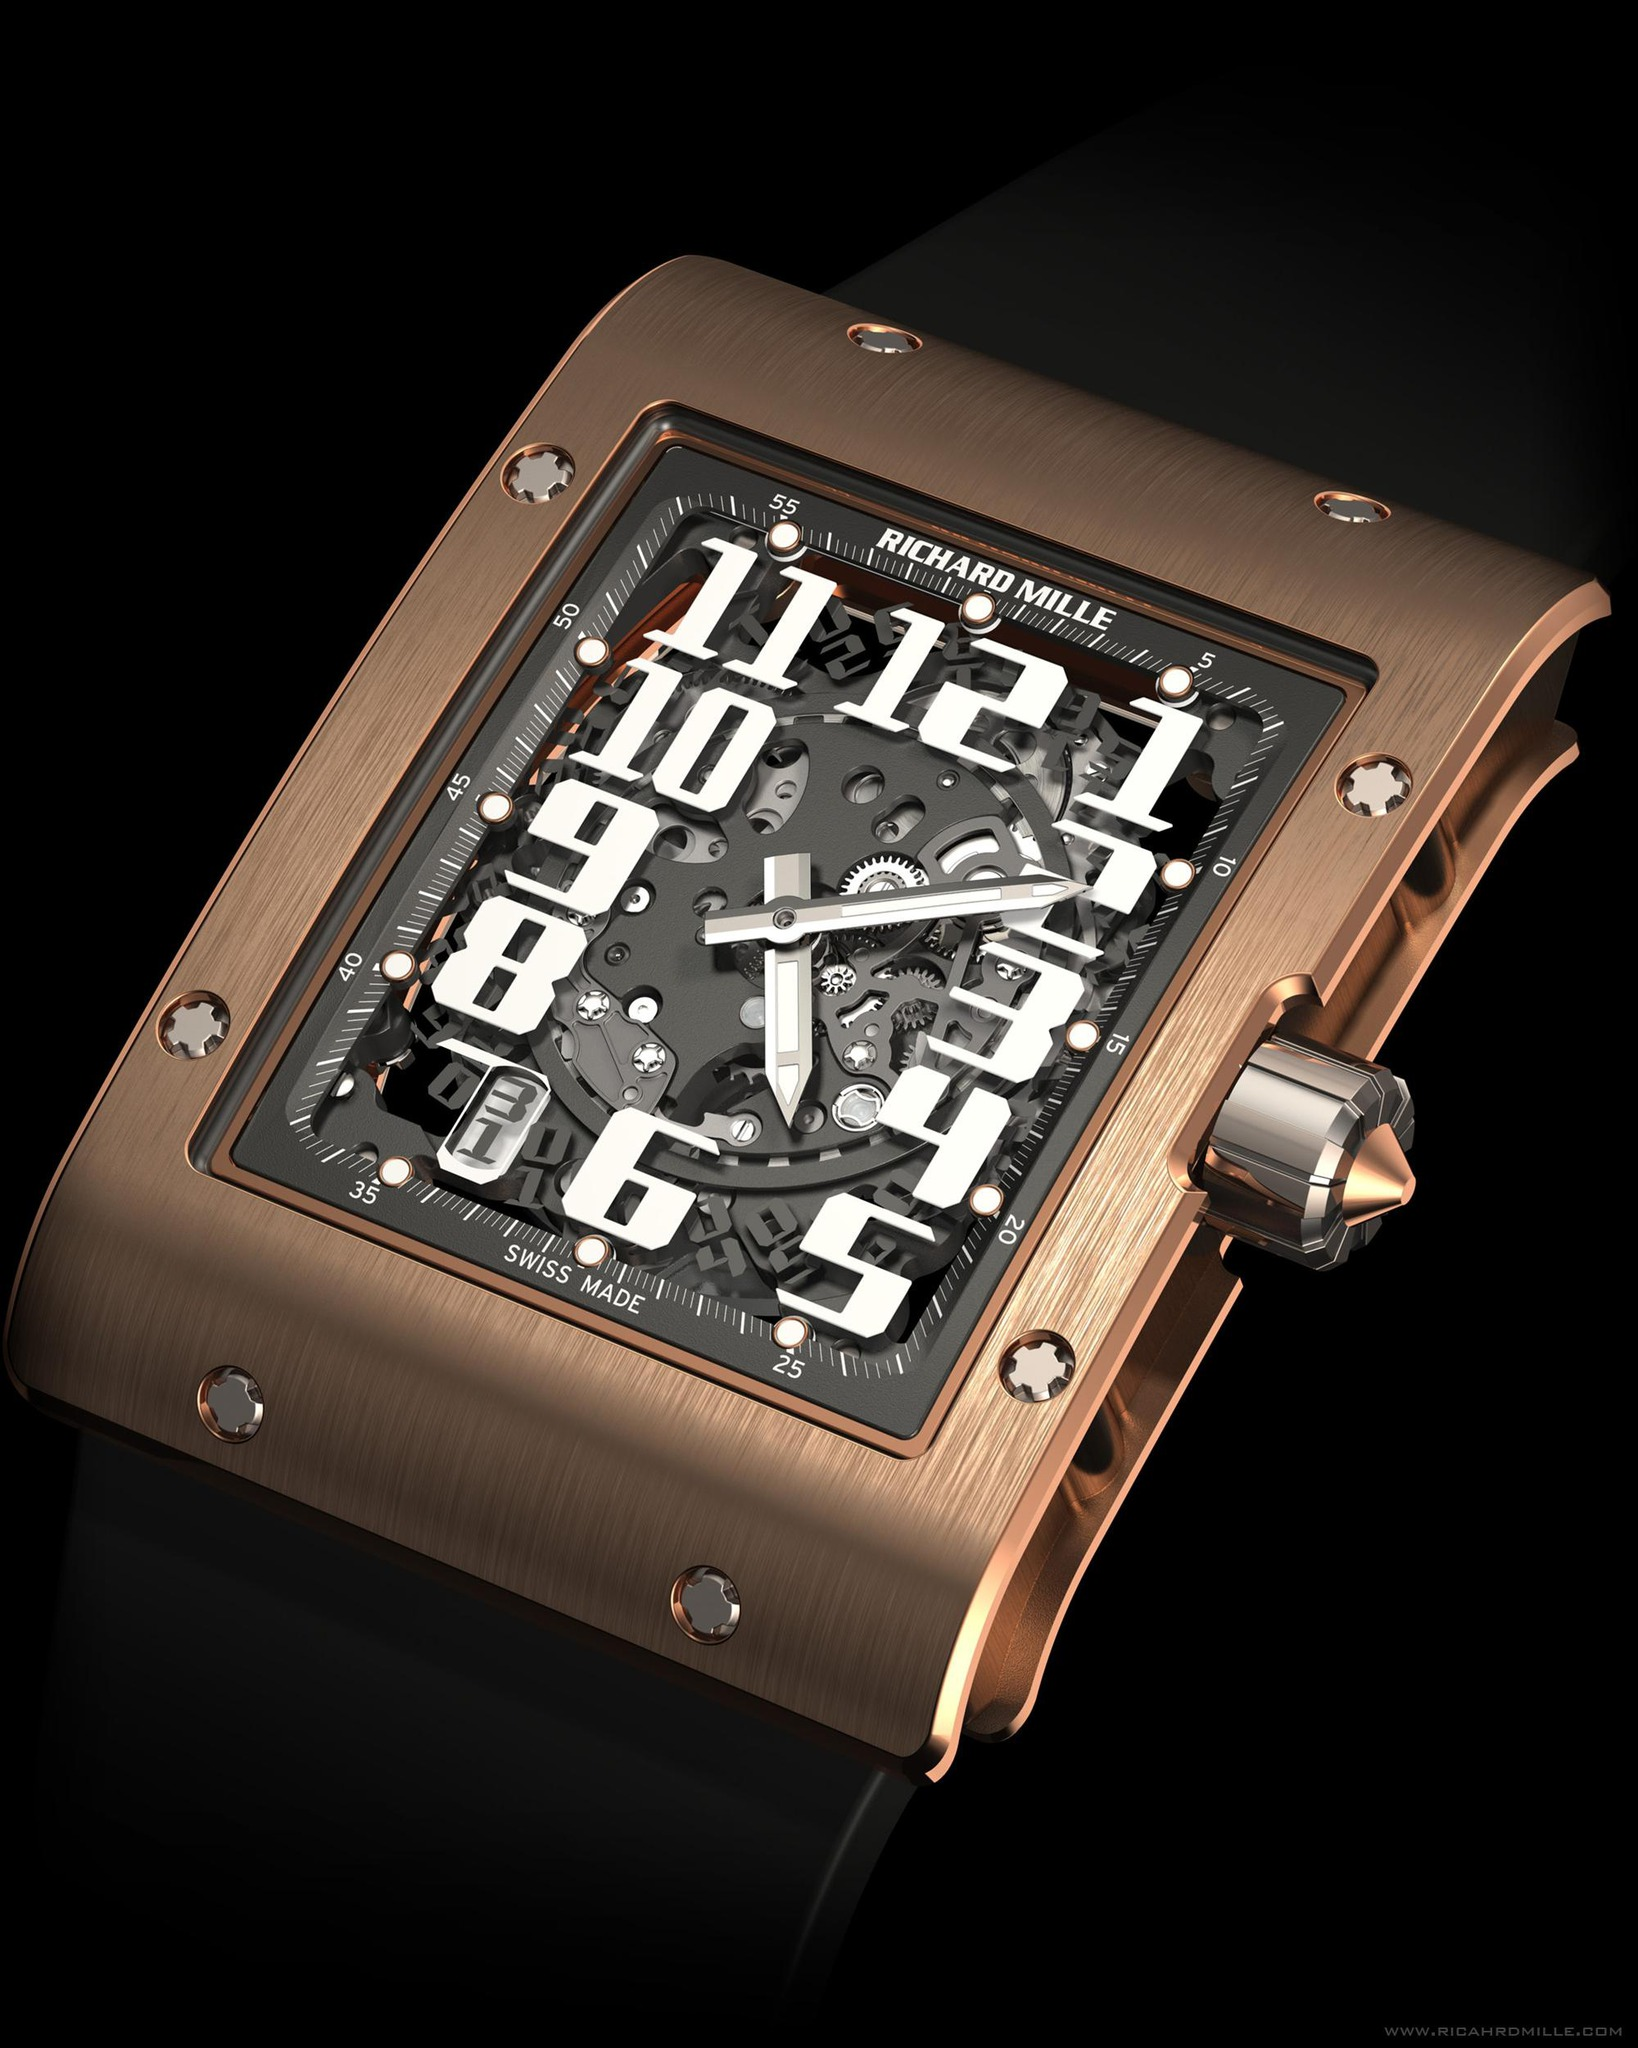 Replica Richard Mille RM 016 Automatic Red Gold Watch